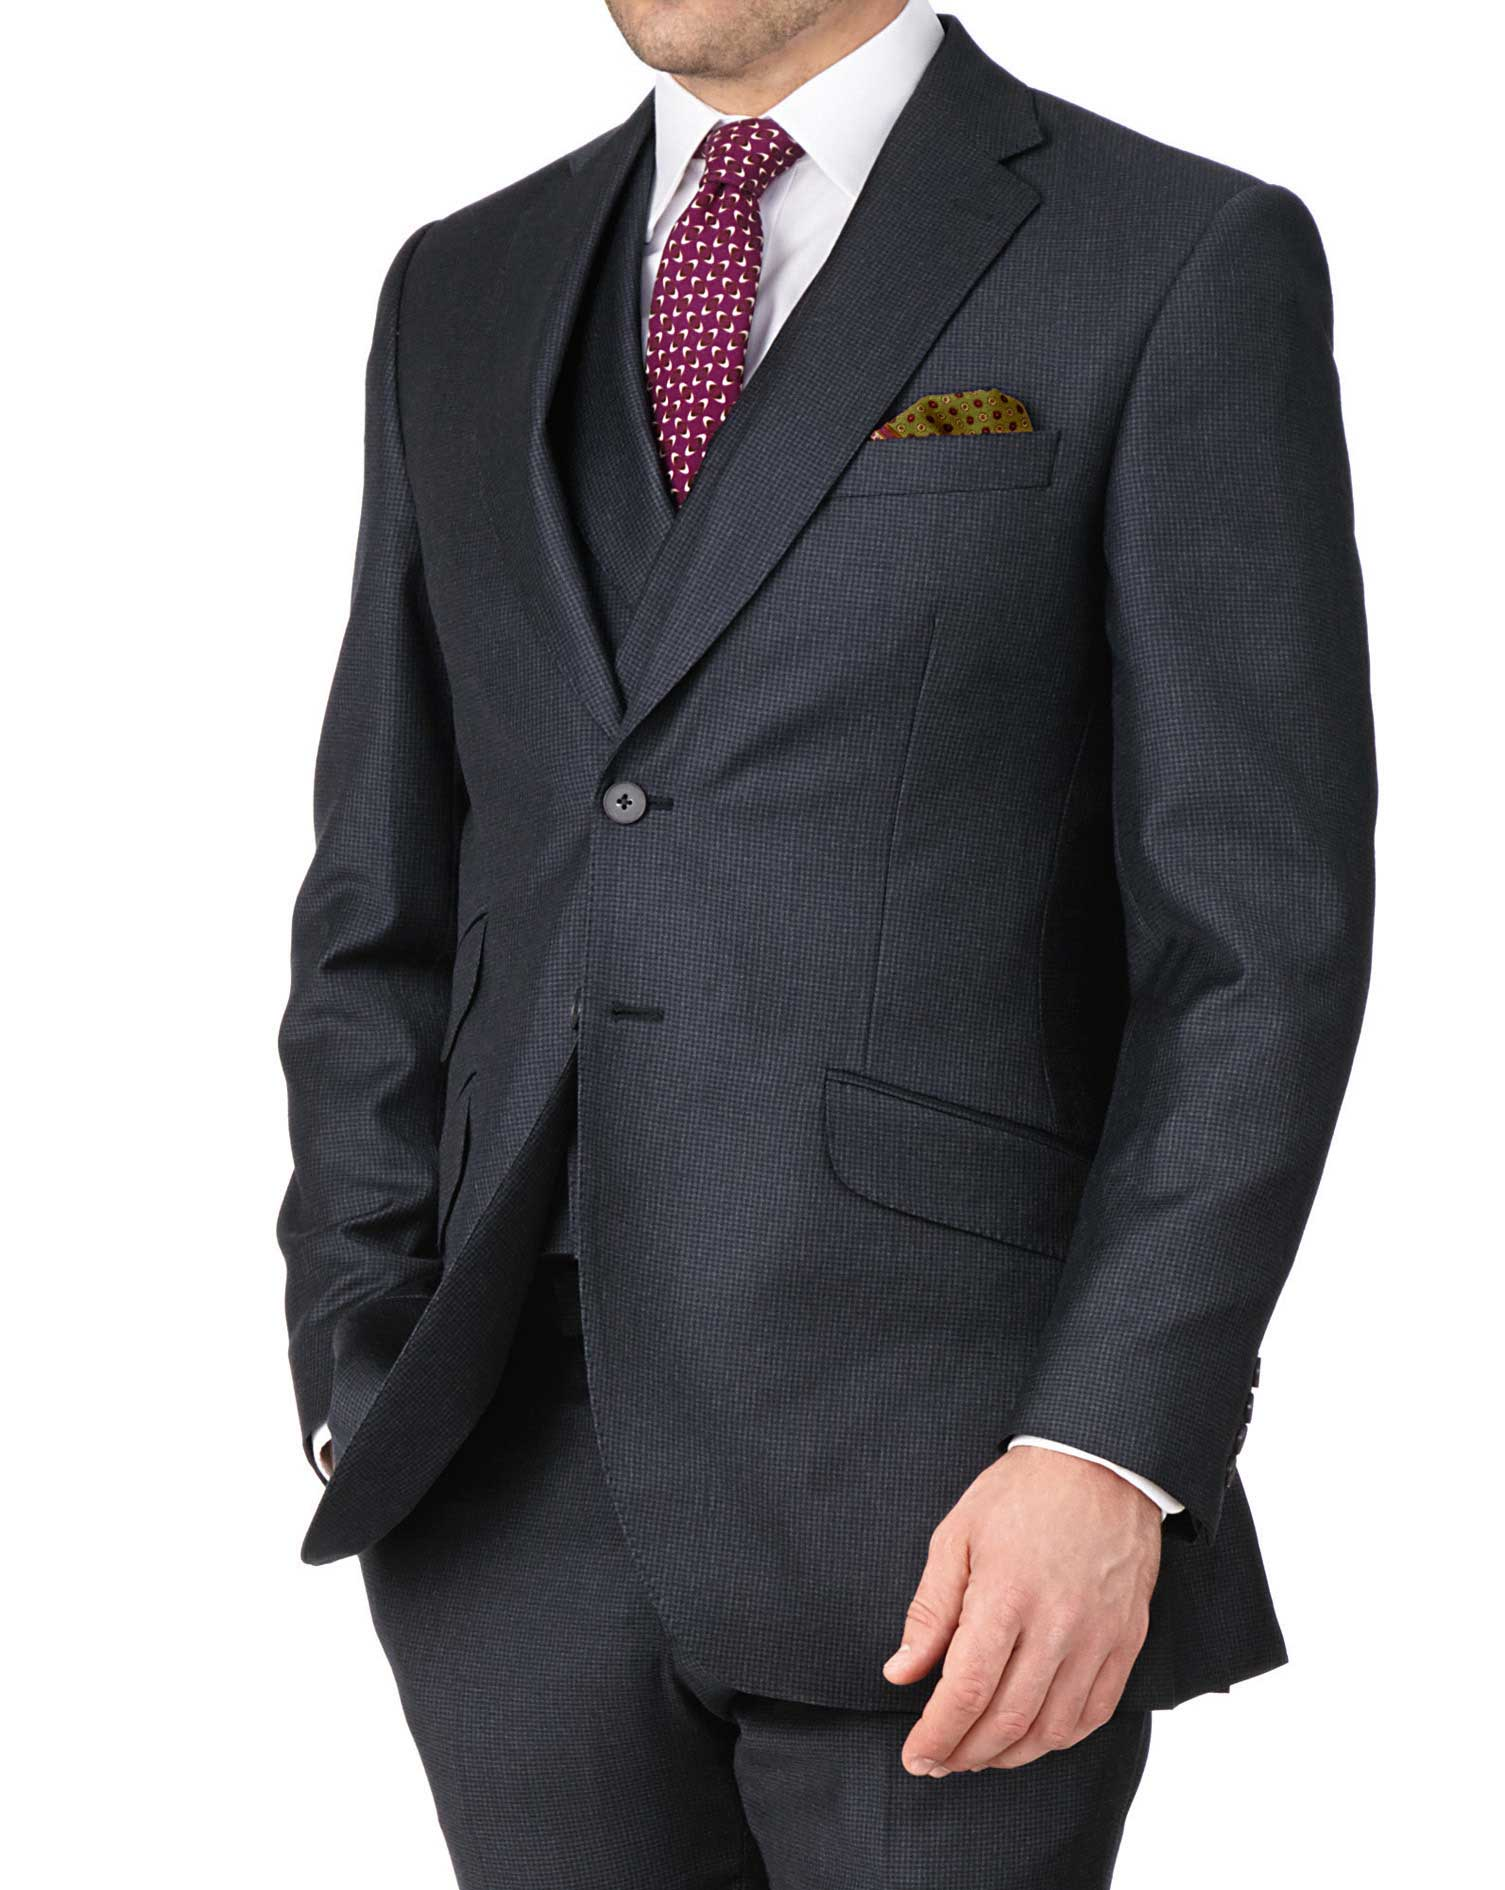 Blue Slim Fit British Serge Puppytooth Luxury Suit Wool Jacket Size 38 Long by Charles Tyrwhitt